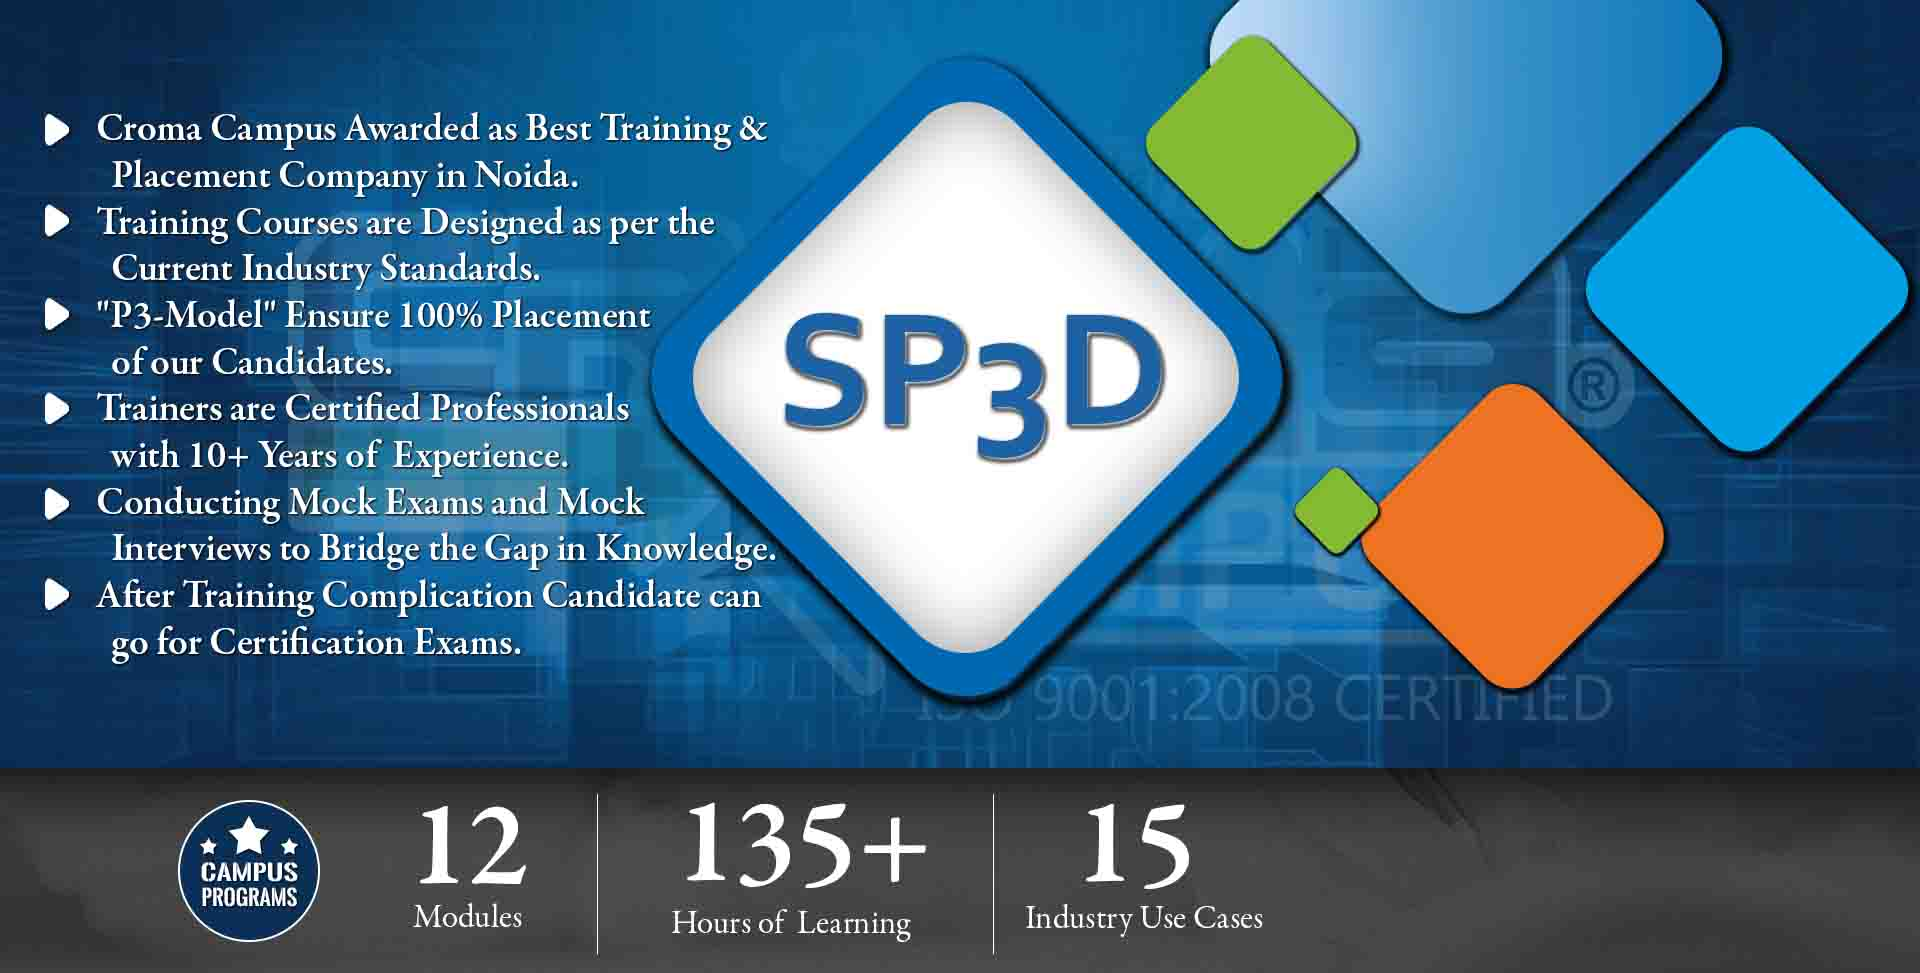 SP3D Training in Delhi NCR NCR- Croma Campus